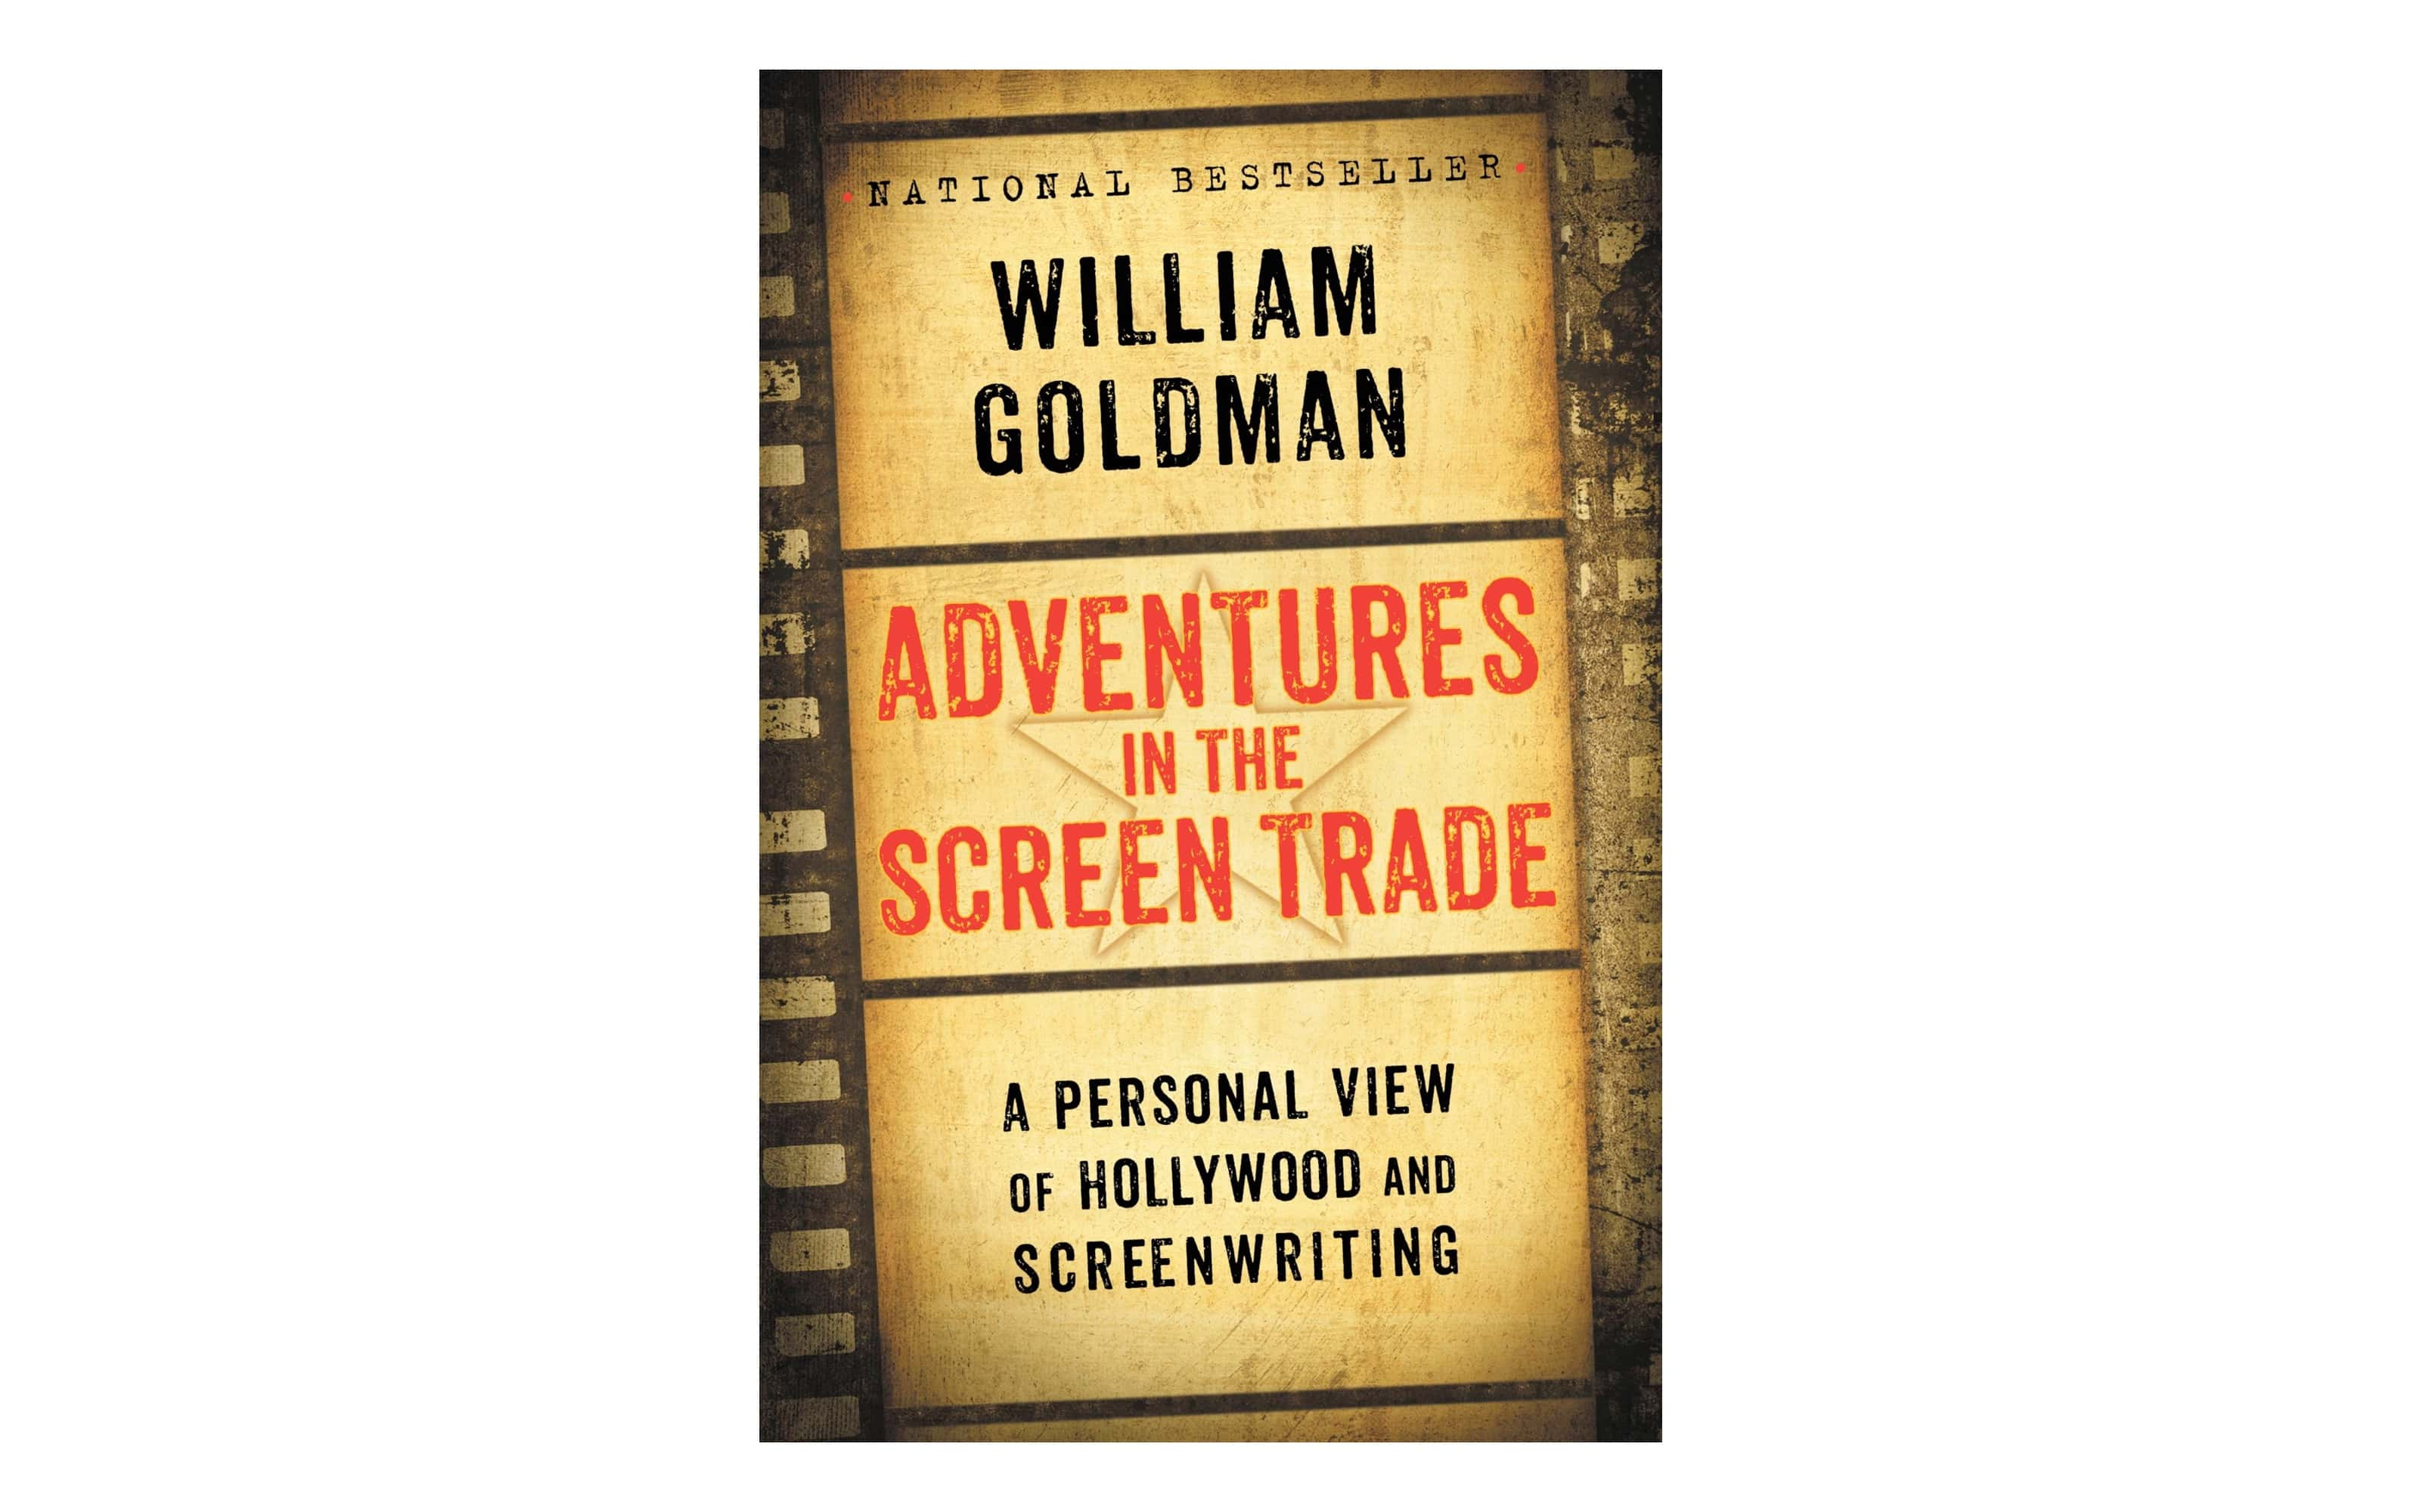 Best Screenwriting Books - Film Direction Books - Adventures in the Screen Trade by William Goldman - Film Production Books - StudioBinder